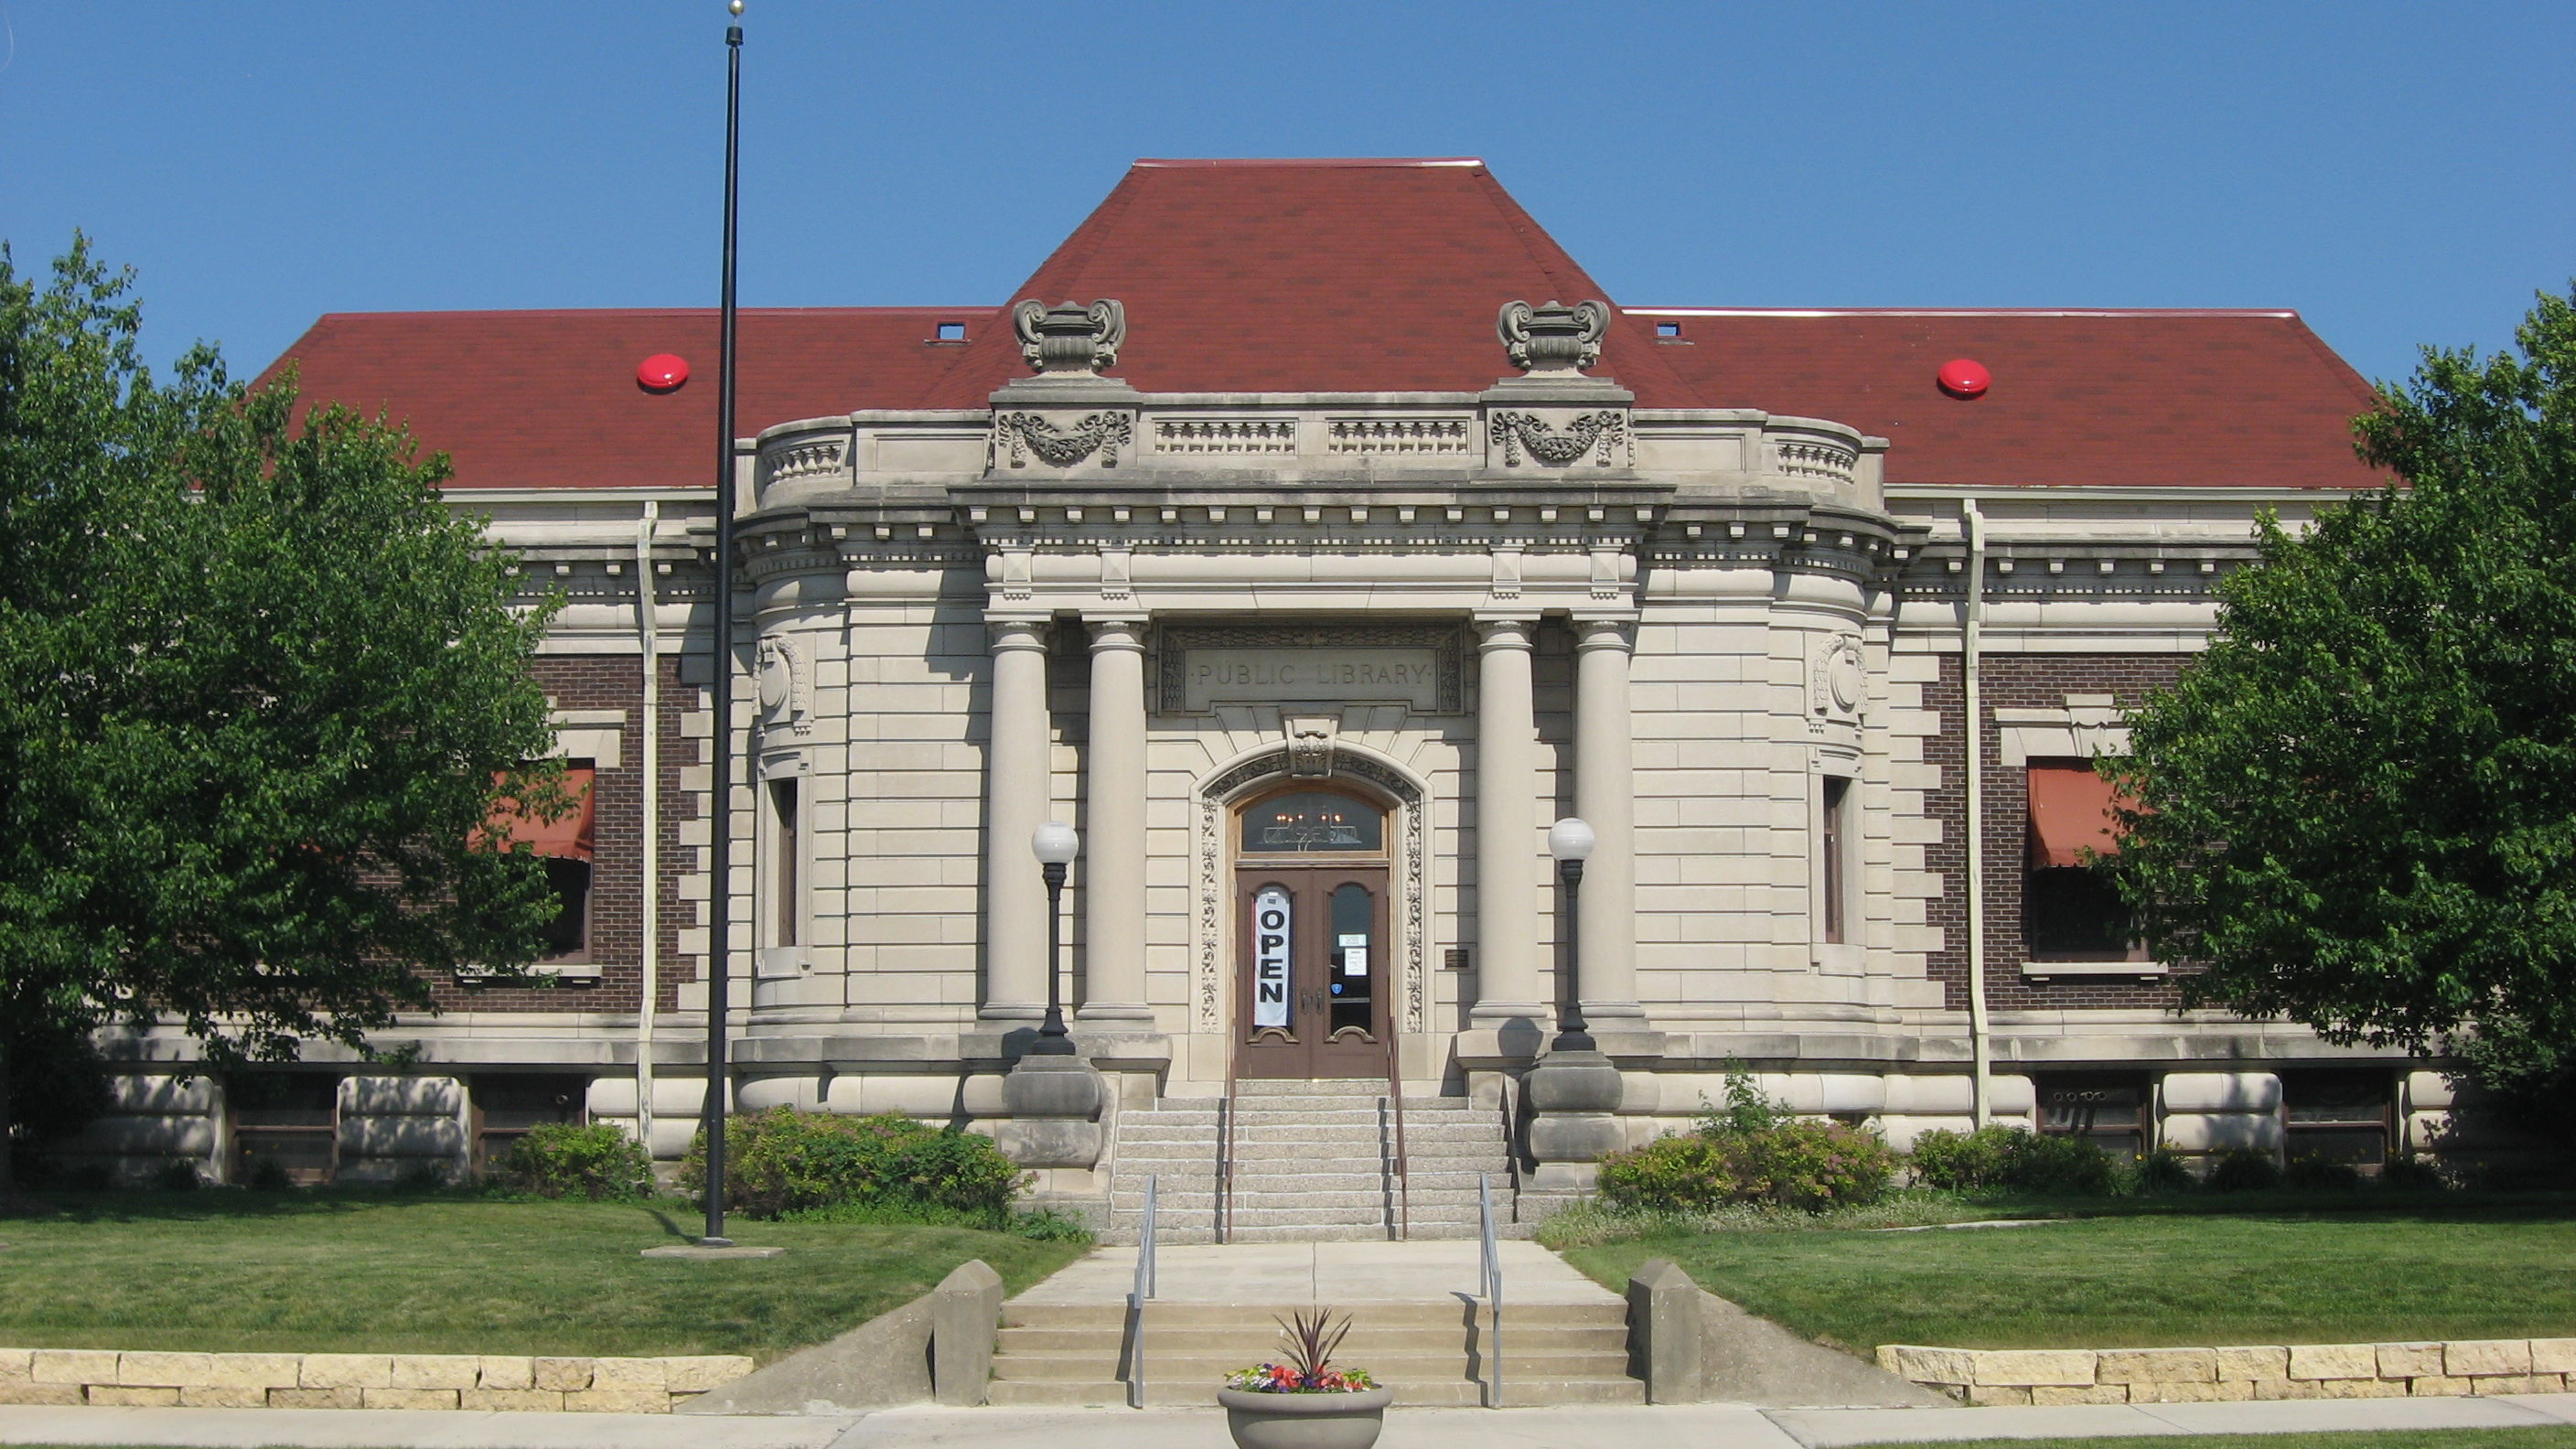 Illinois vermilion county muncie - National Register Of Historic Places Listings In Vermilion County Illinois Wikiwand